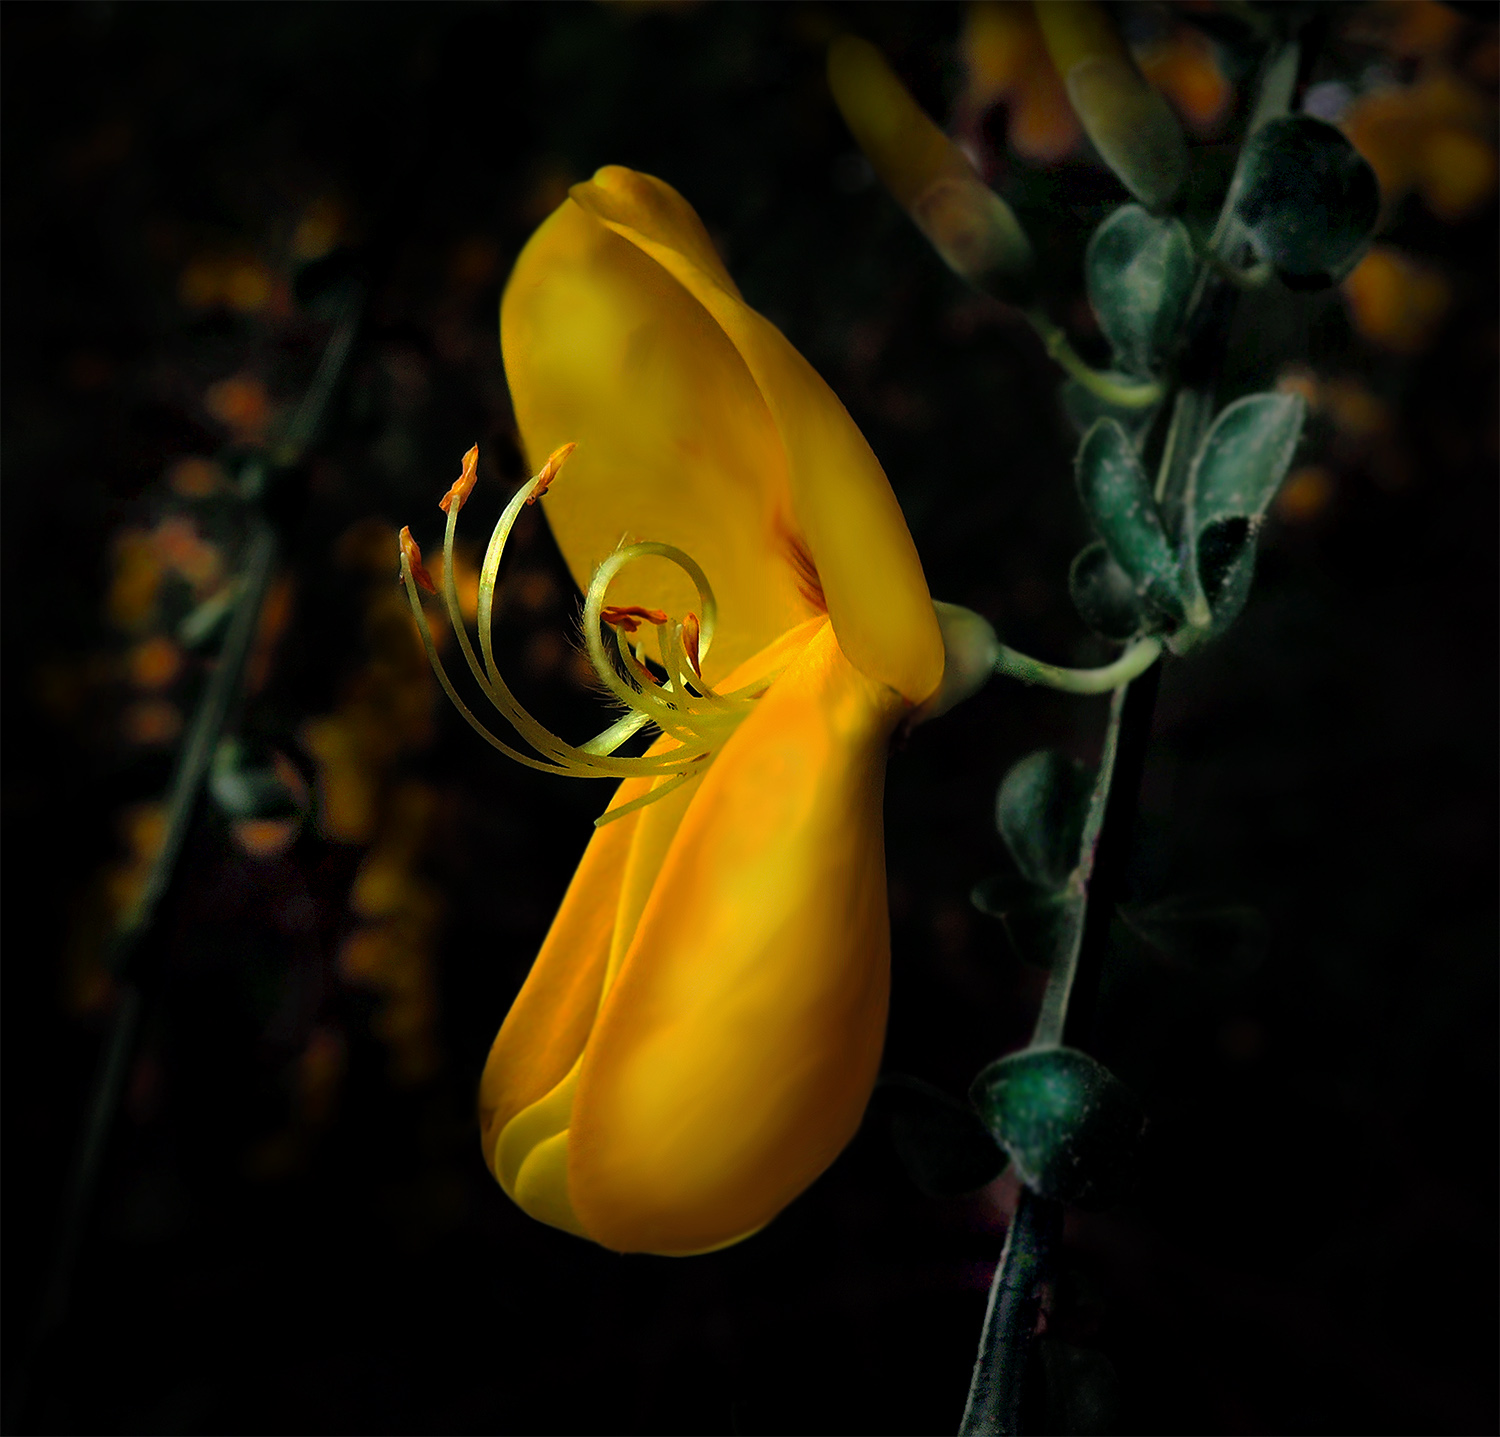 94. bloomin' scotch broom, by k. bos